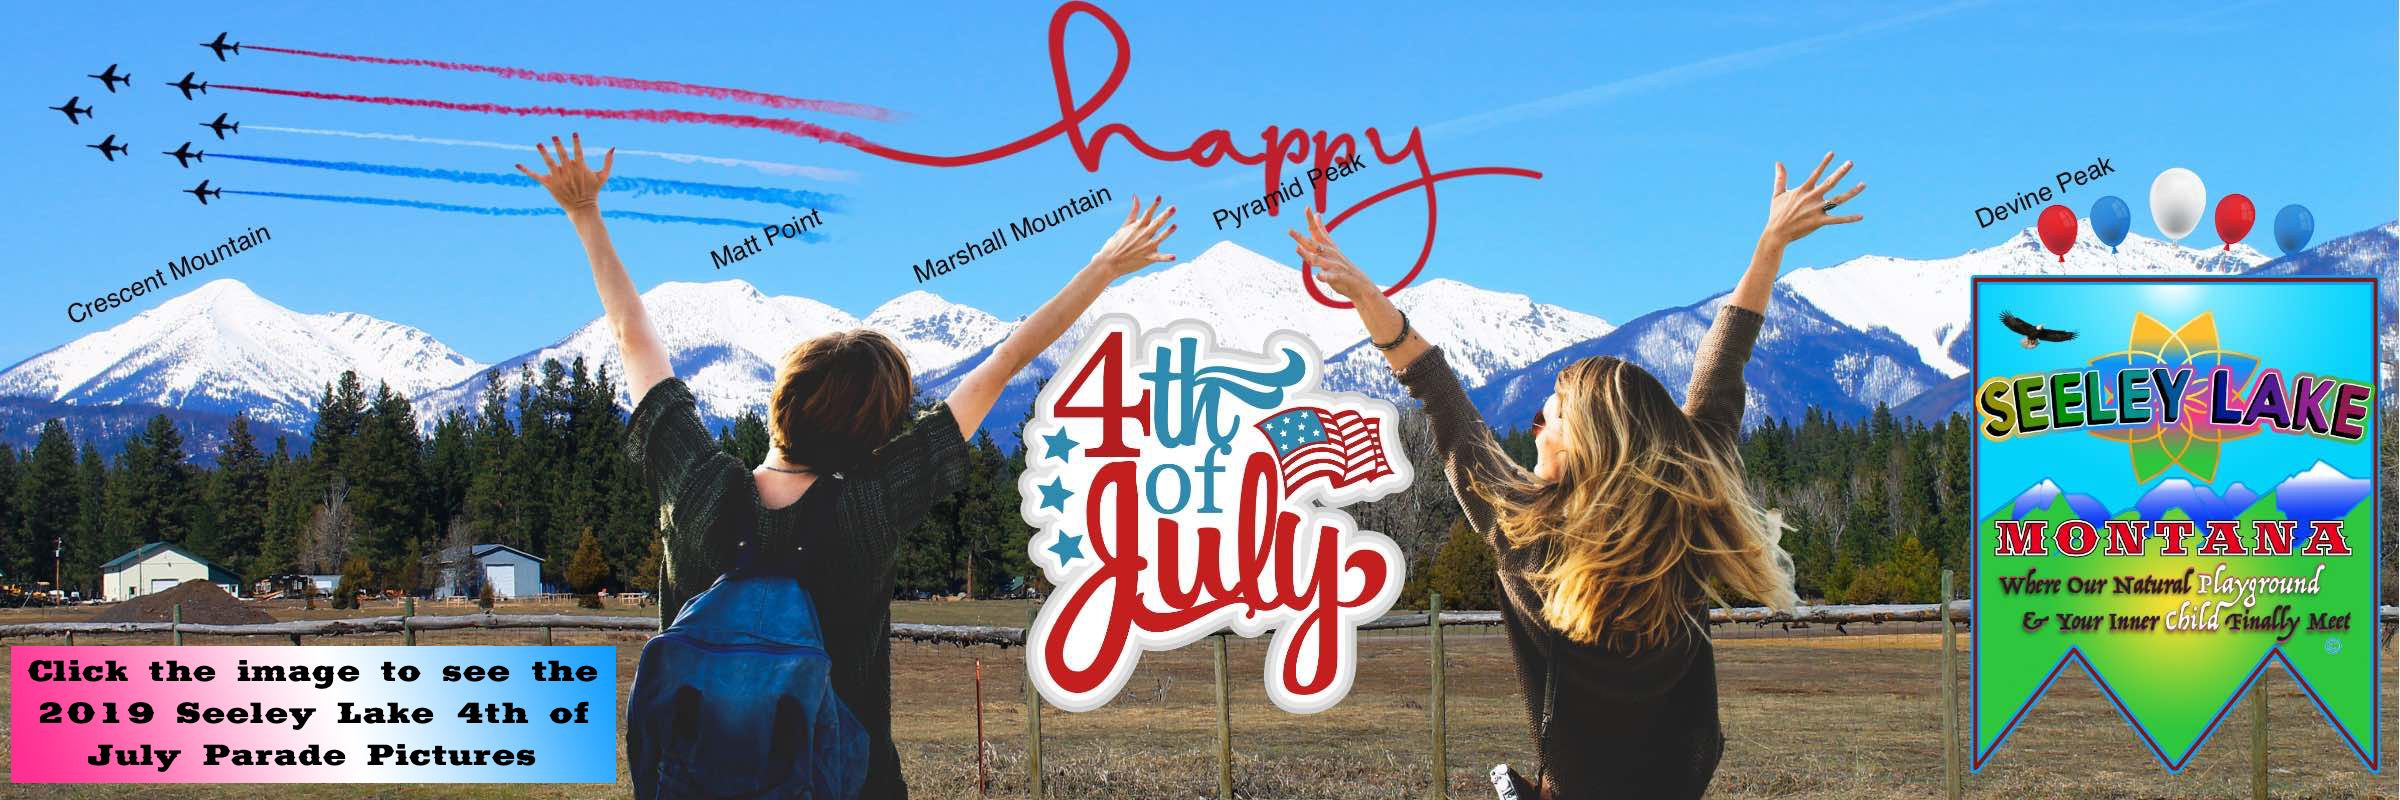 Seeley Lake Montana 2019 4th of July Parade Pictures | Happy 4th of July 2019